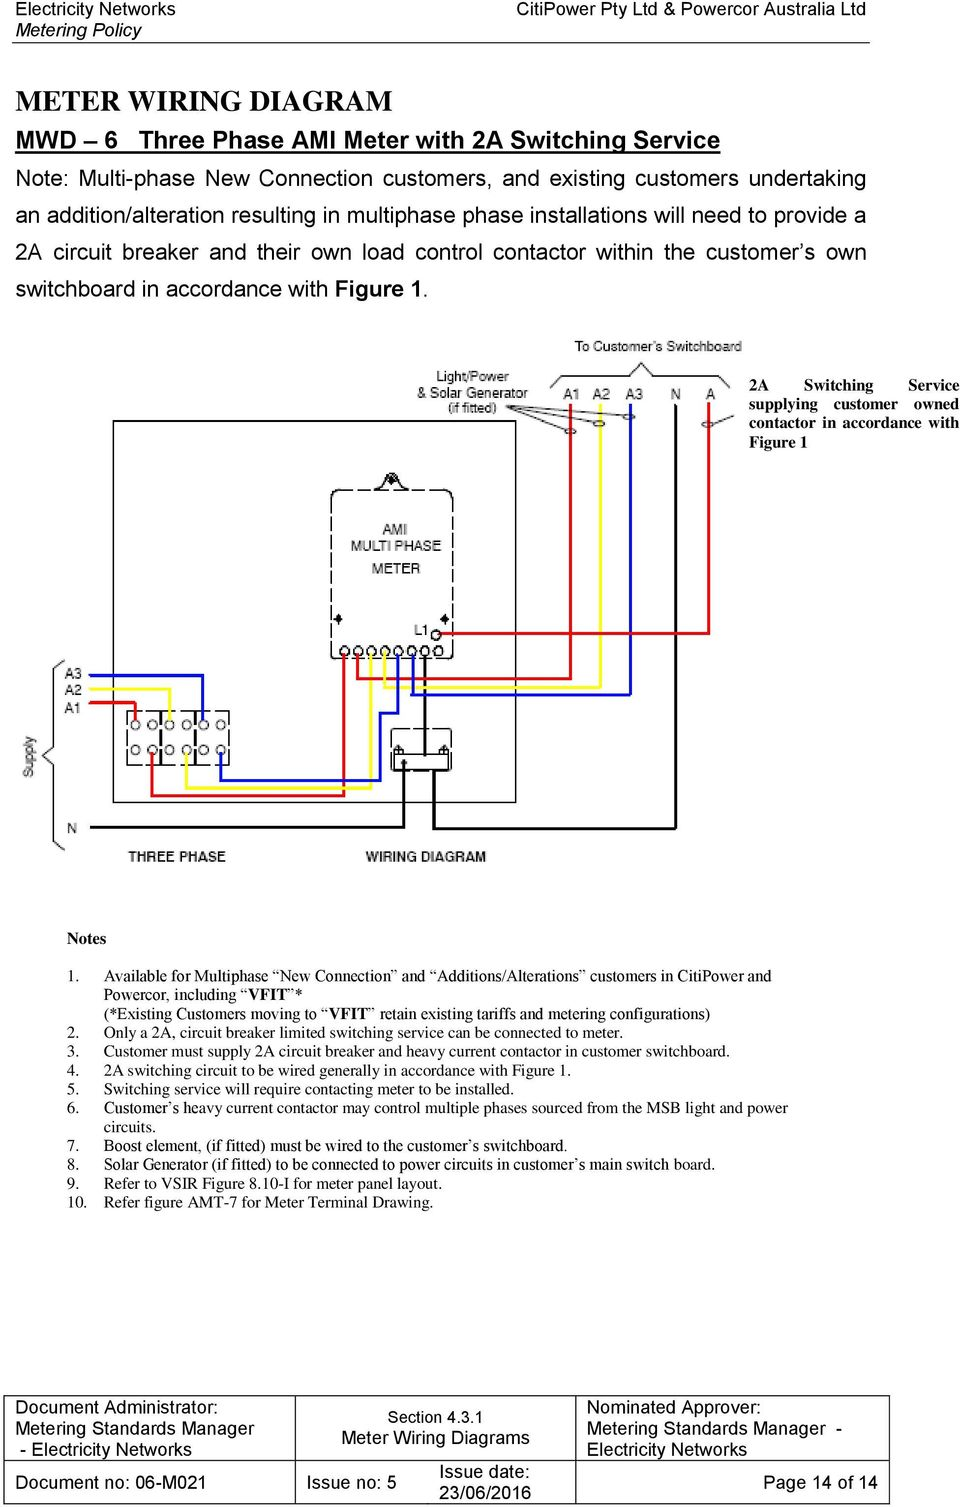 2a switching service supplying customer owned contactor in accordance with  figure 1 1